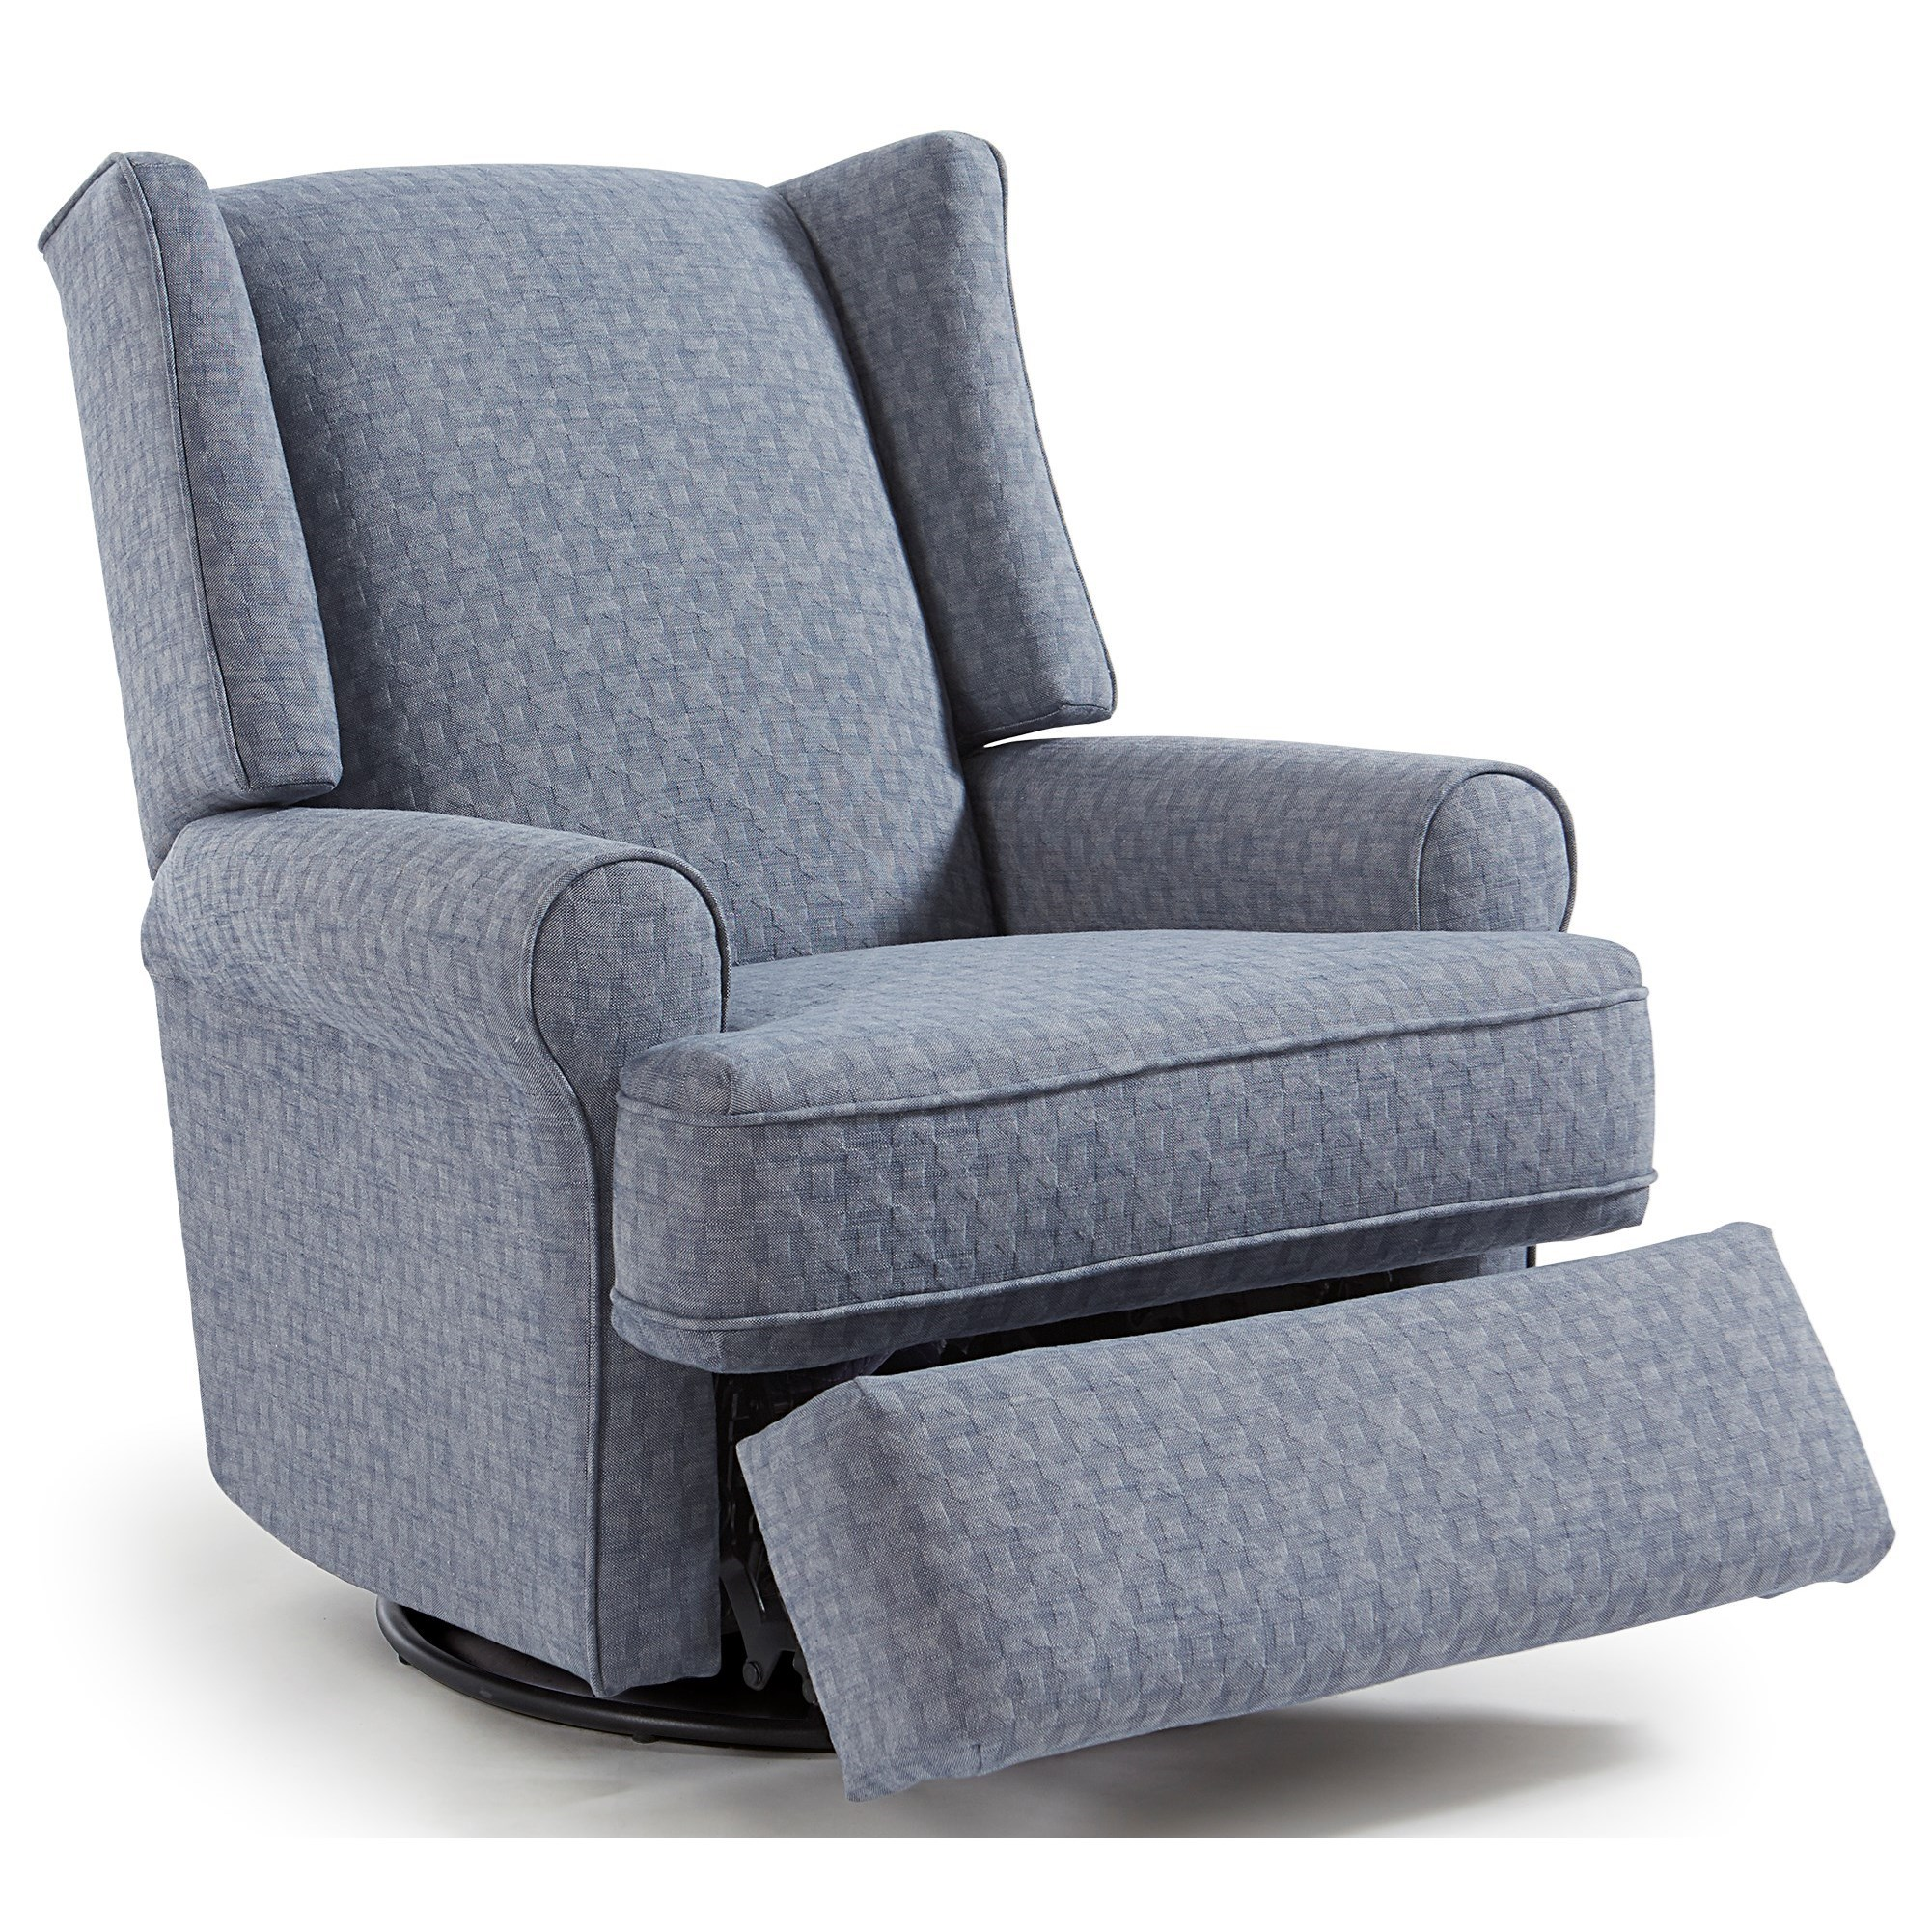 best home furnishings logan 5ni95 wing chair style swivel glider recliner